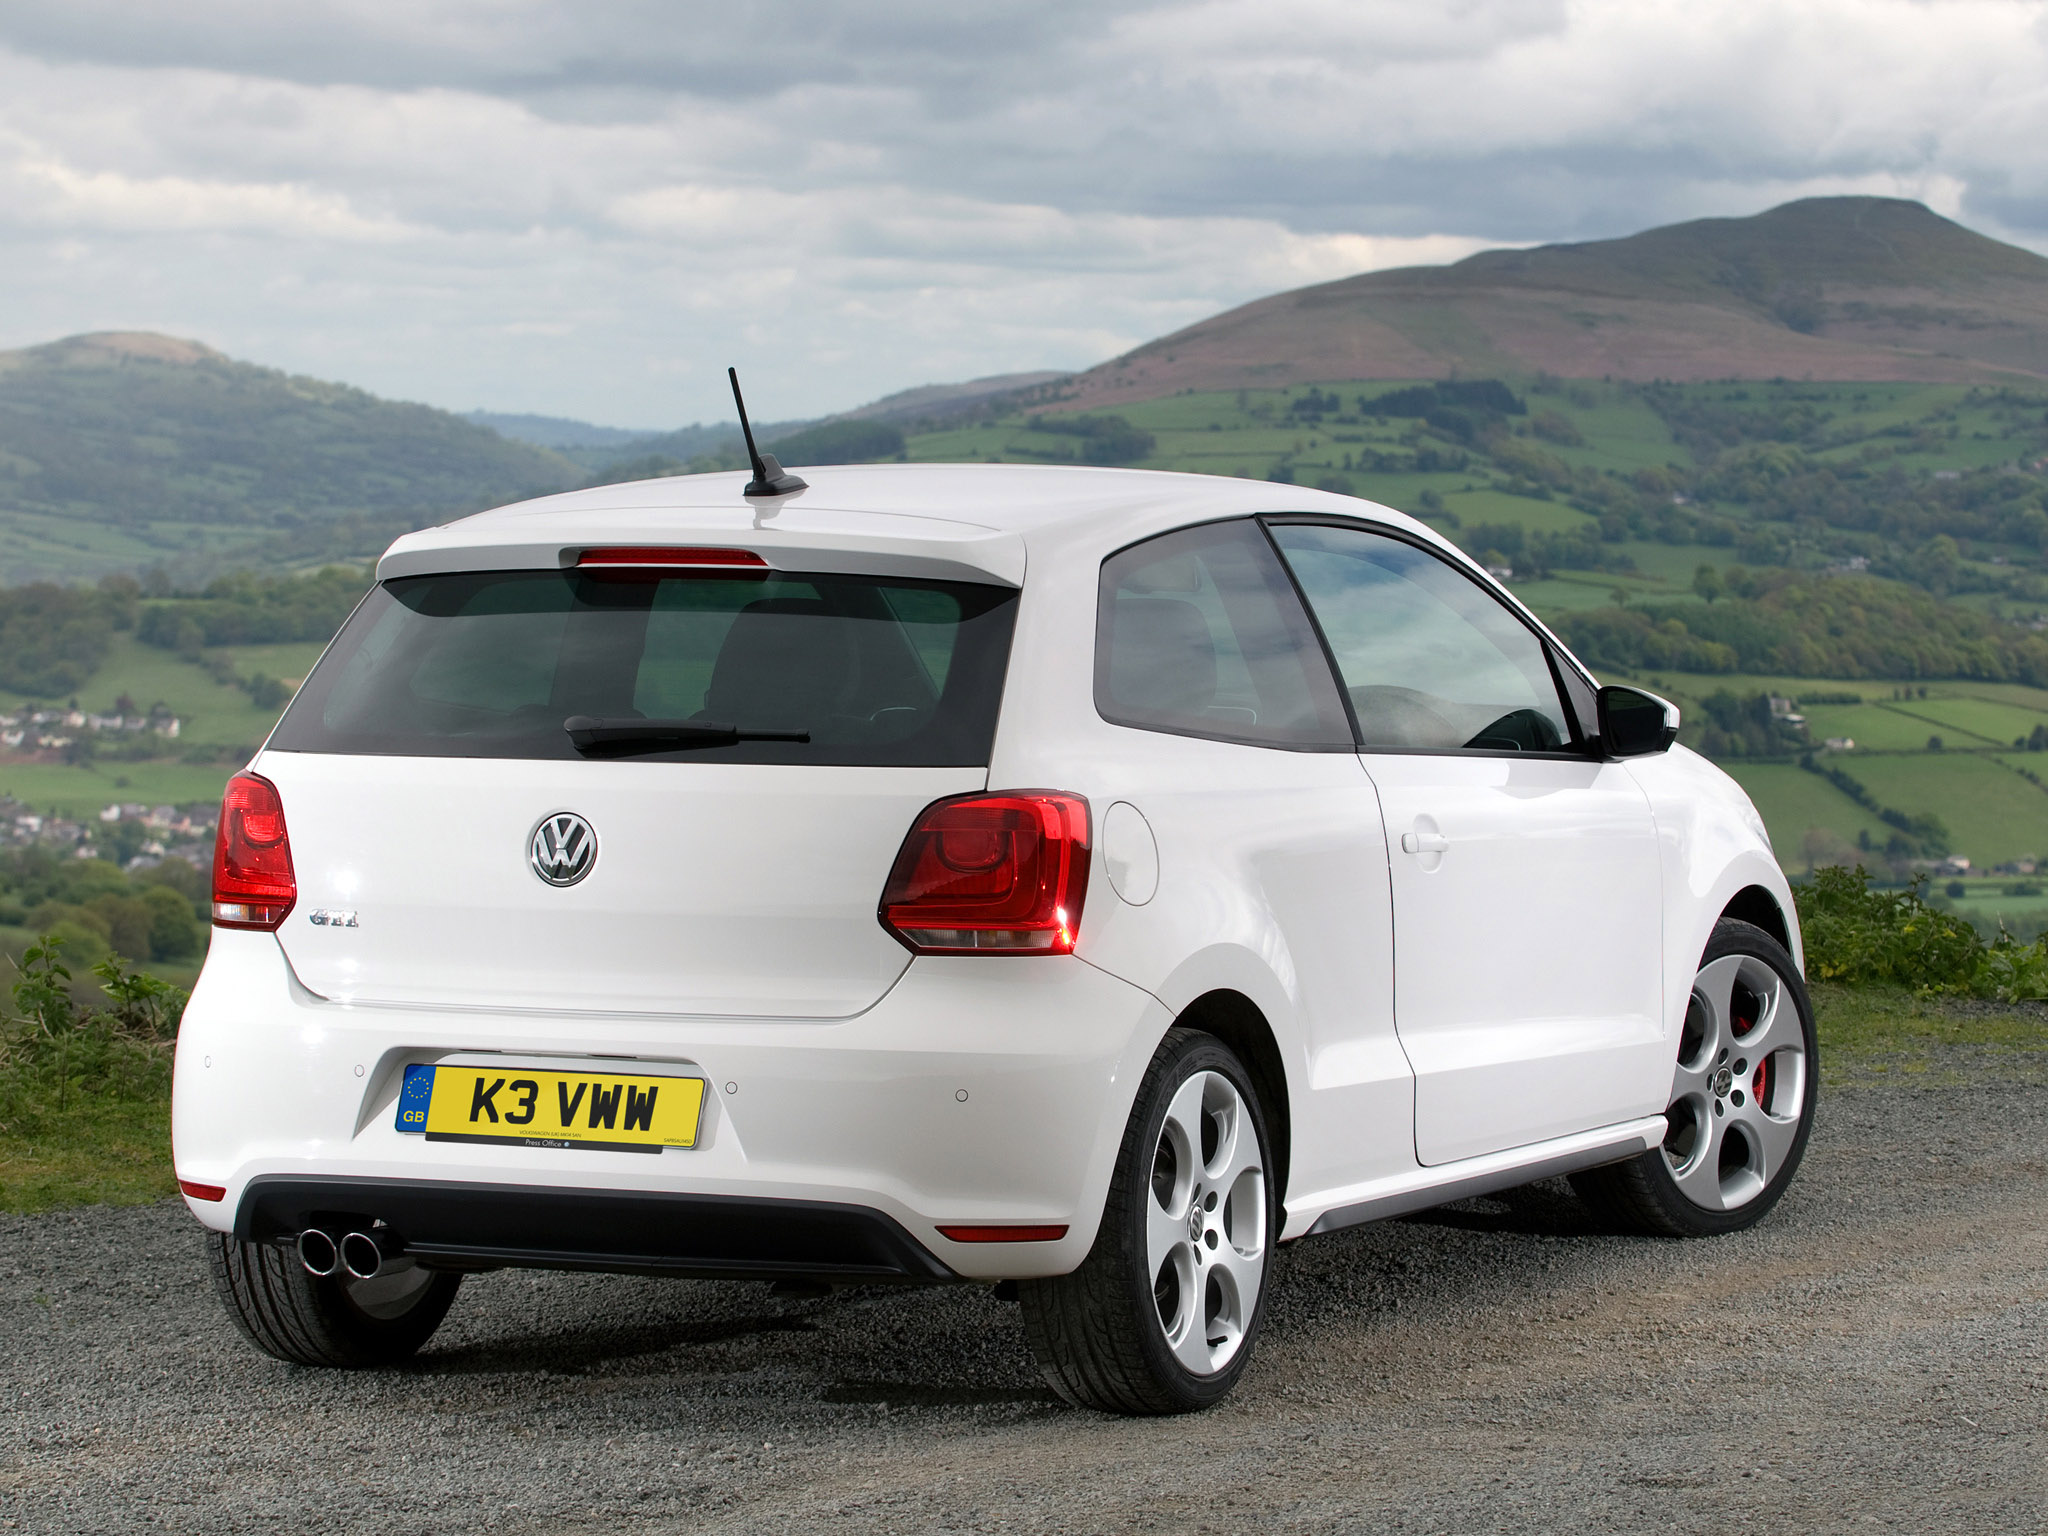 volkswagen polo gti 3 door uk 2010 volkswagen polo gti 3 door uk 2010 photo 10 car in pictures. Black Bedroom Furniture Sets. Home Design Ideas